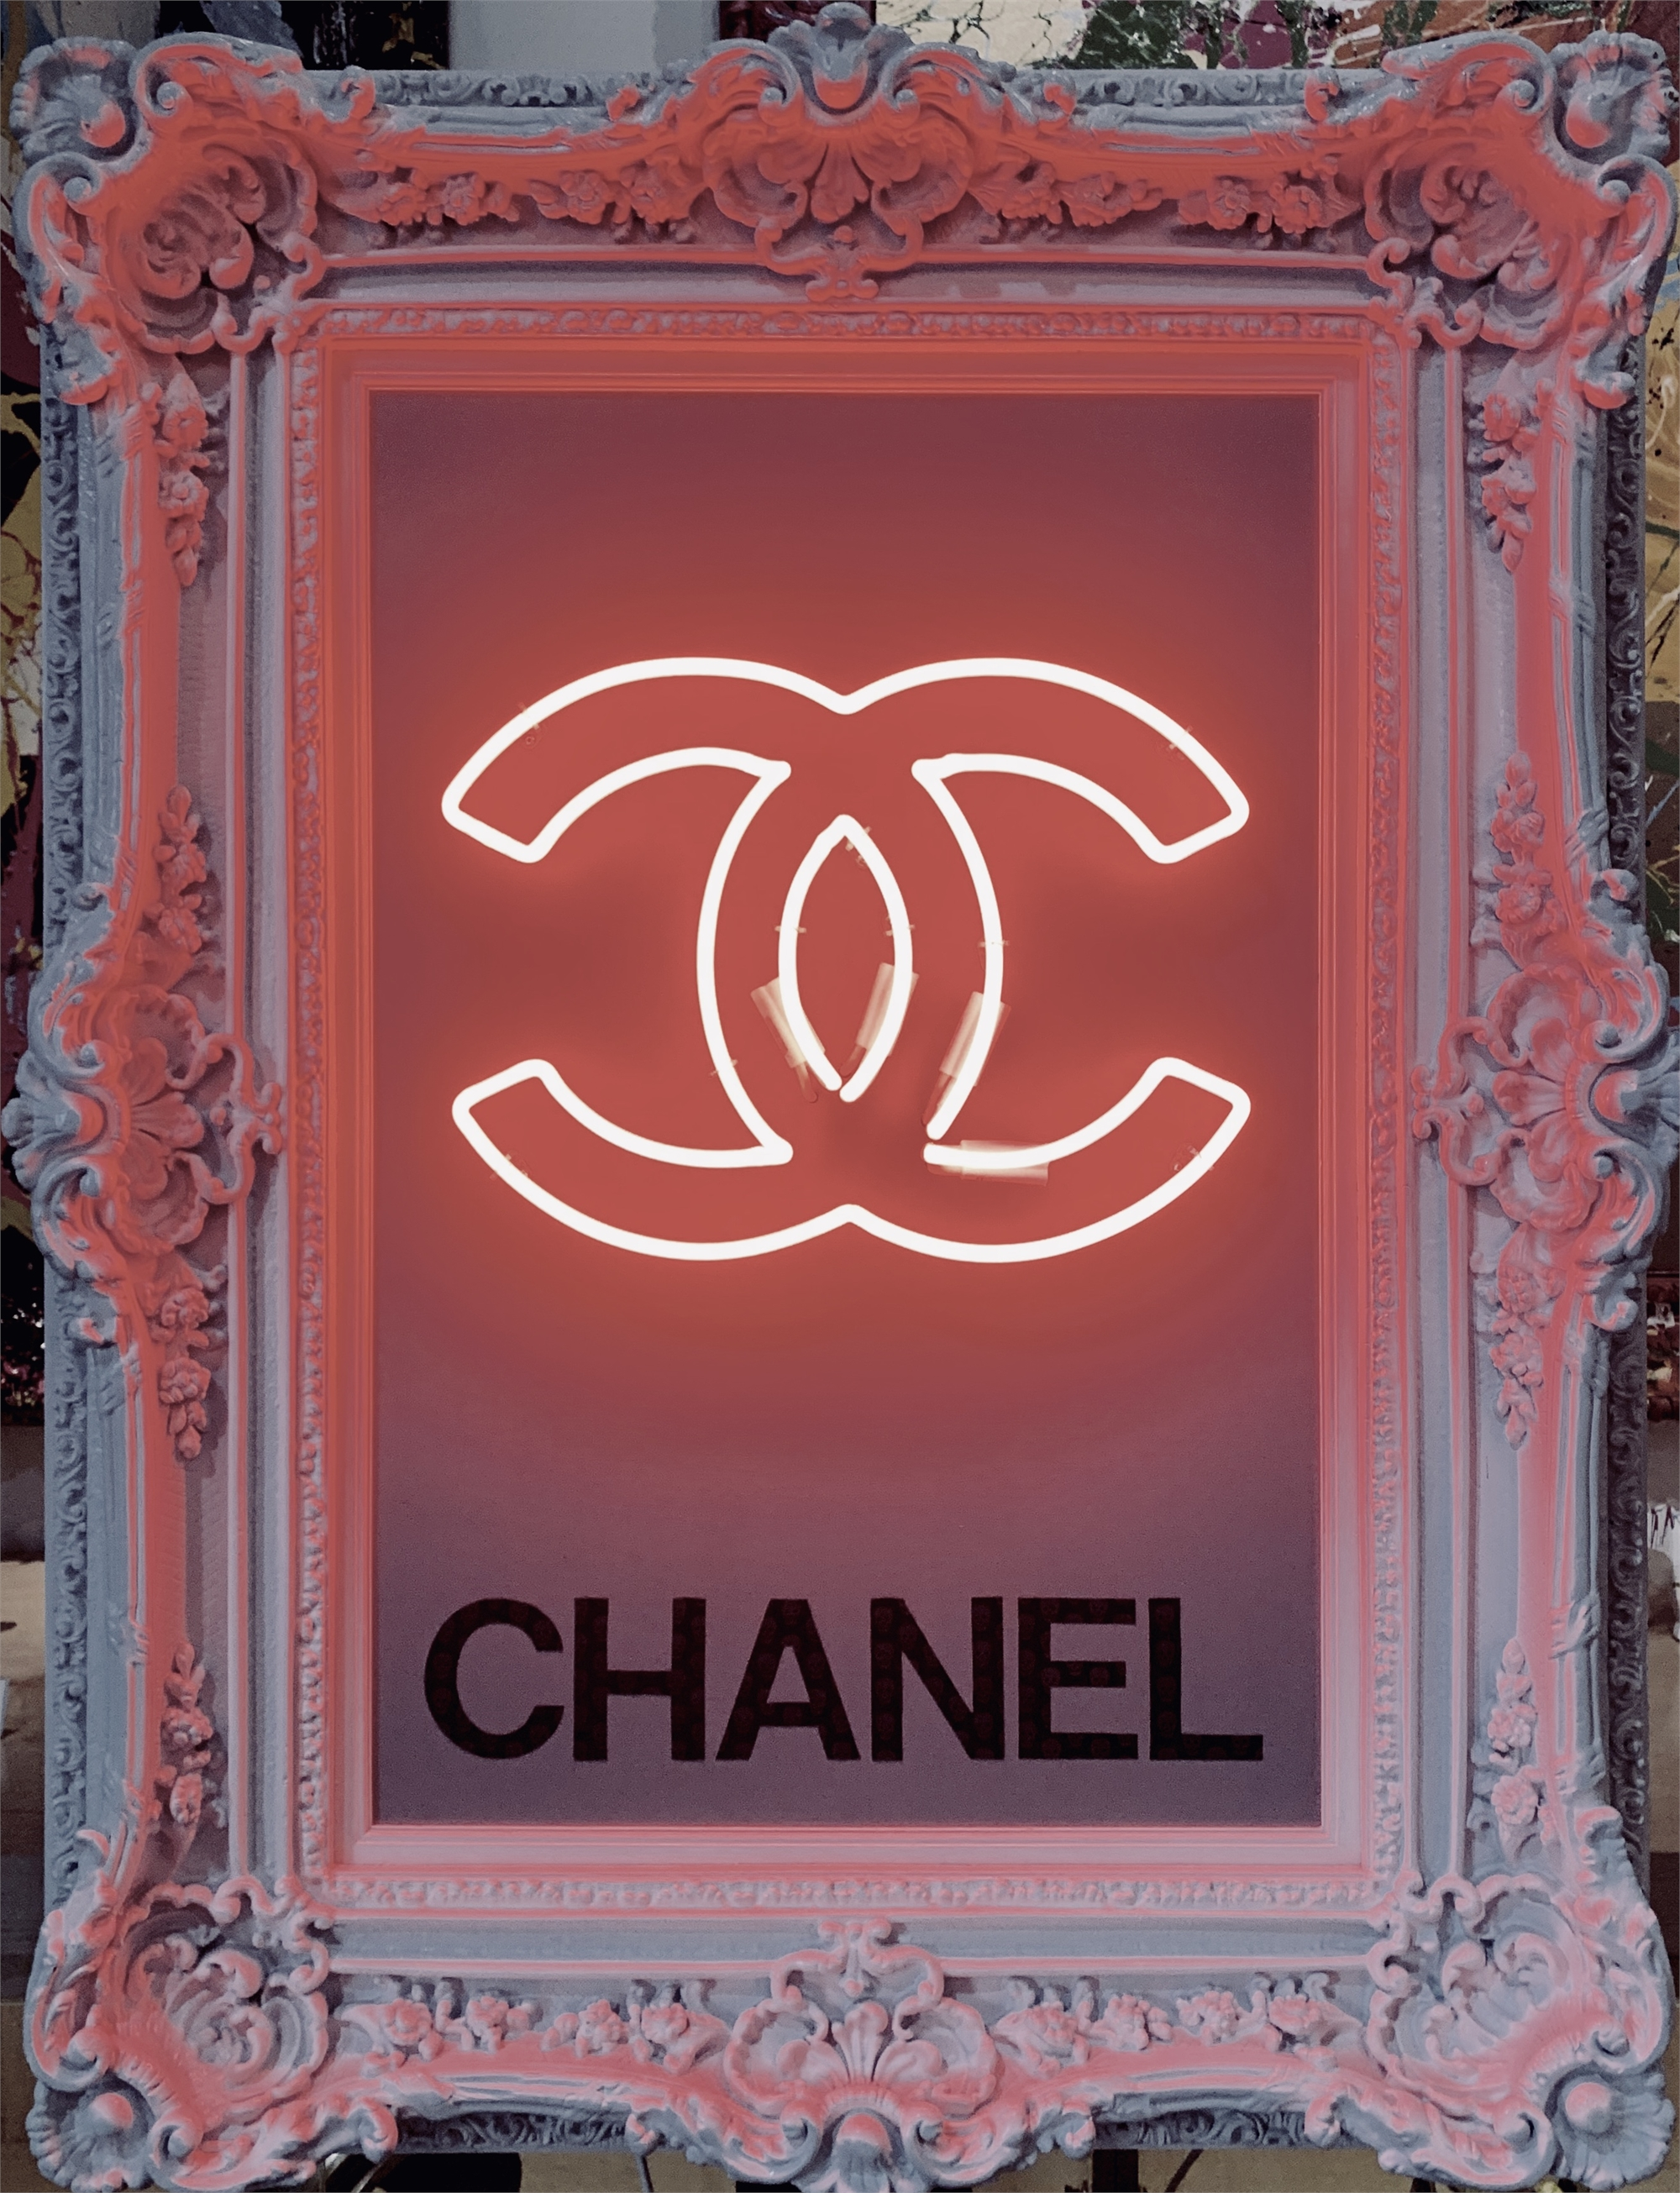 Neon Chanel by Behind Pink Walls